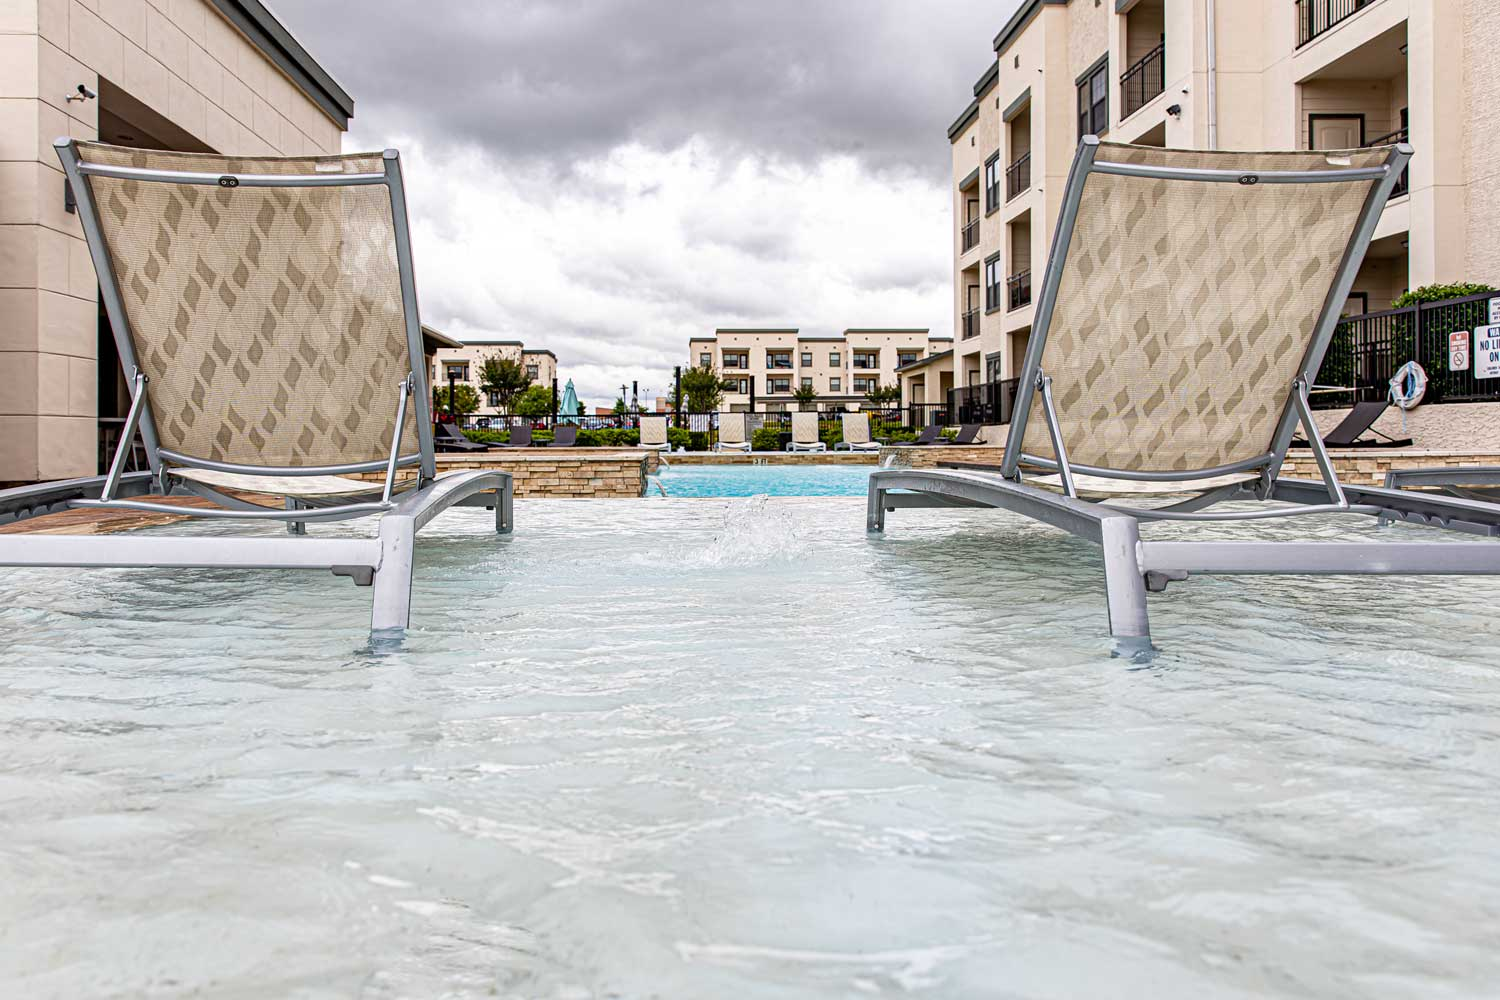 Lounge Chair beside the Pool at Oxford at Crossroads Centre Apartments in Waxahachie, TX